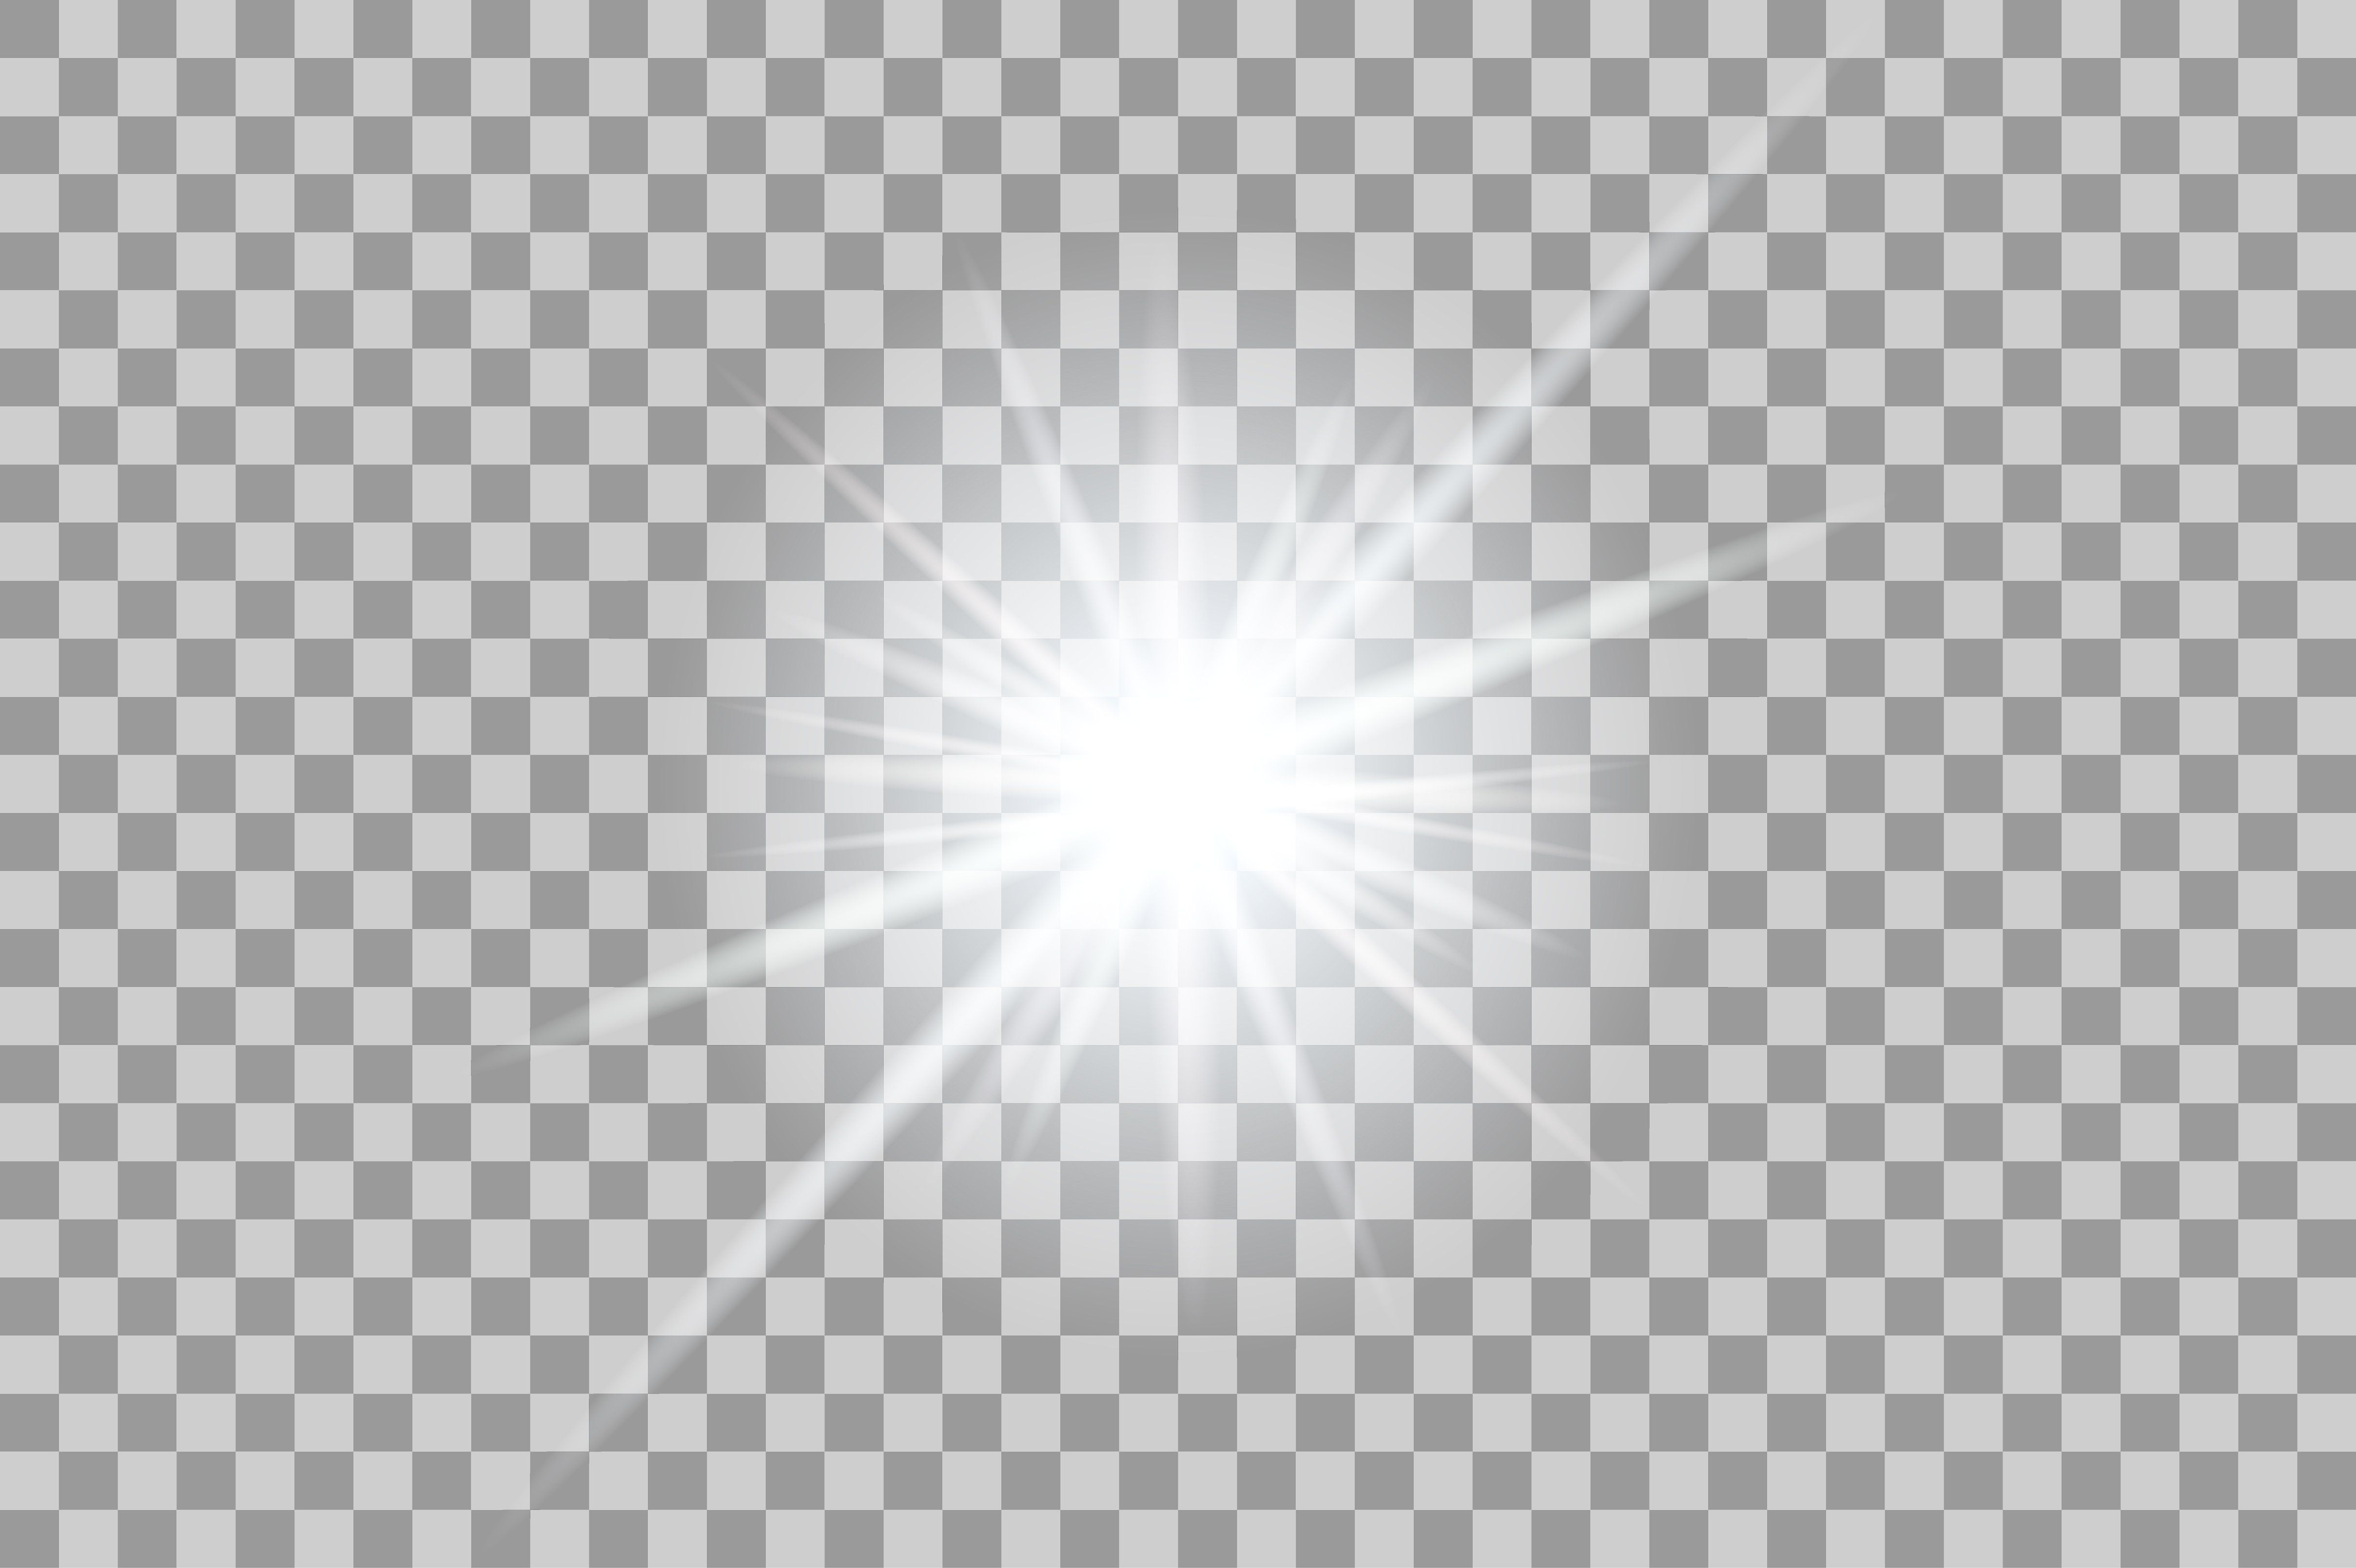 Flashlight clipart glow. Vector white light effects